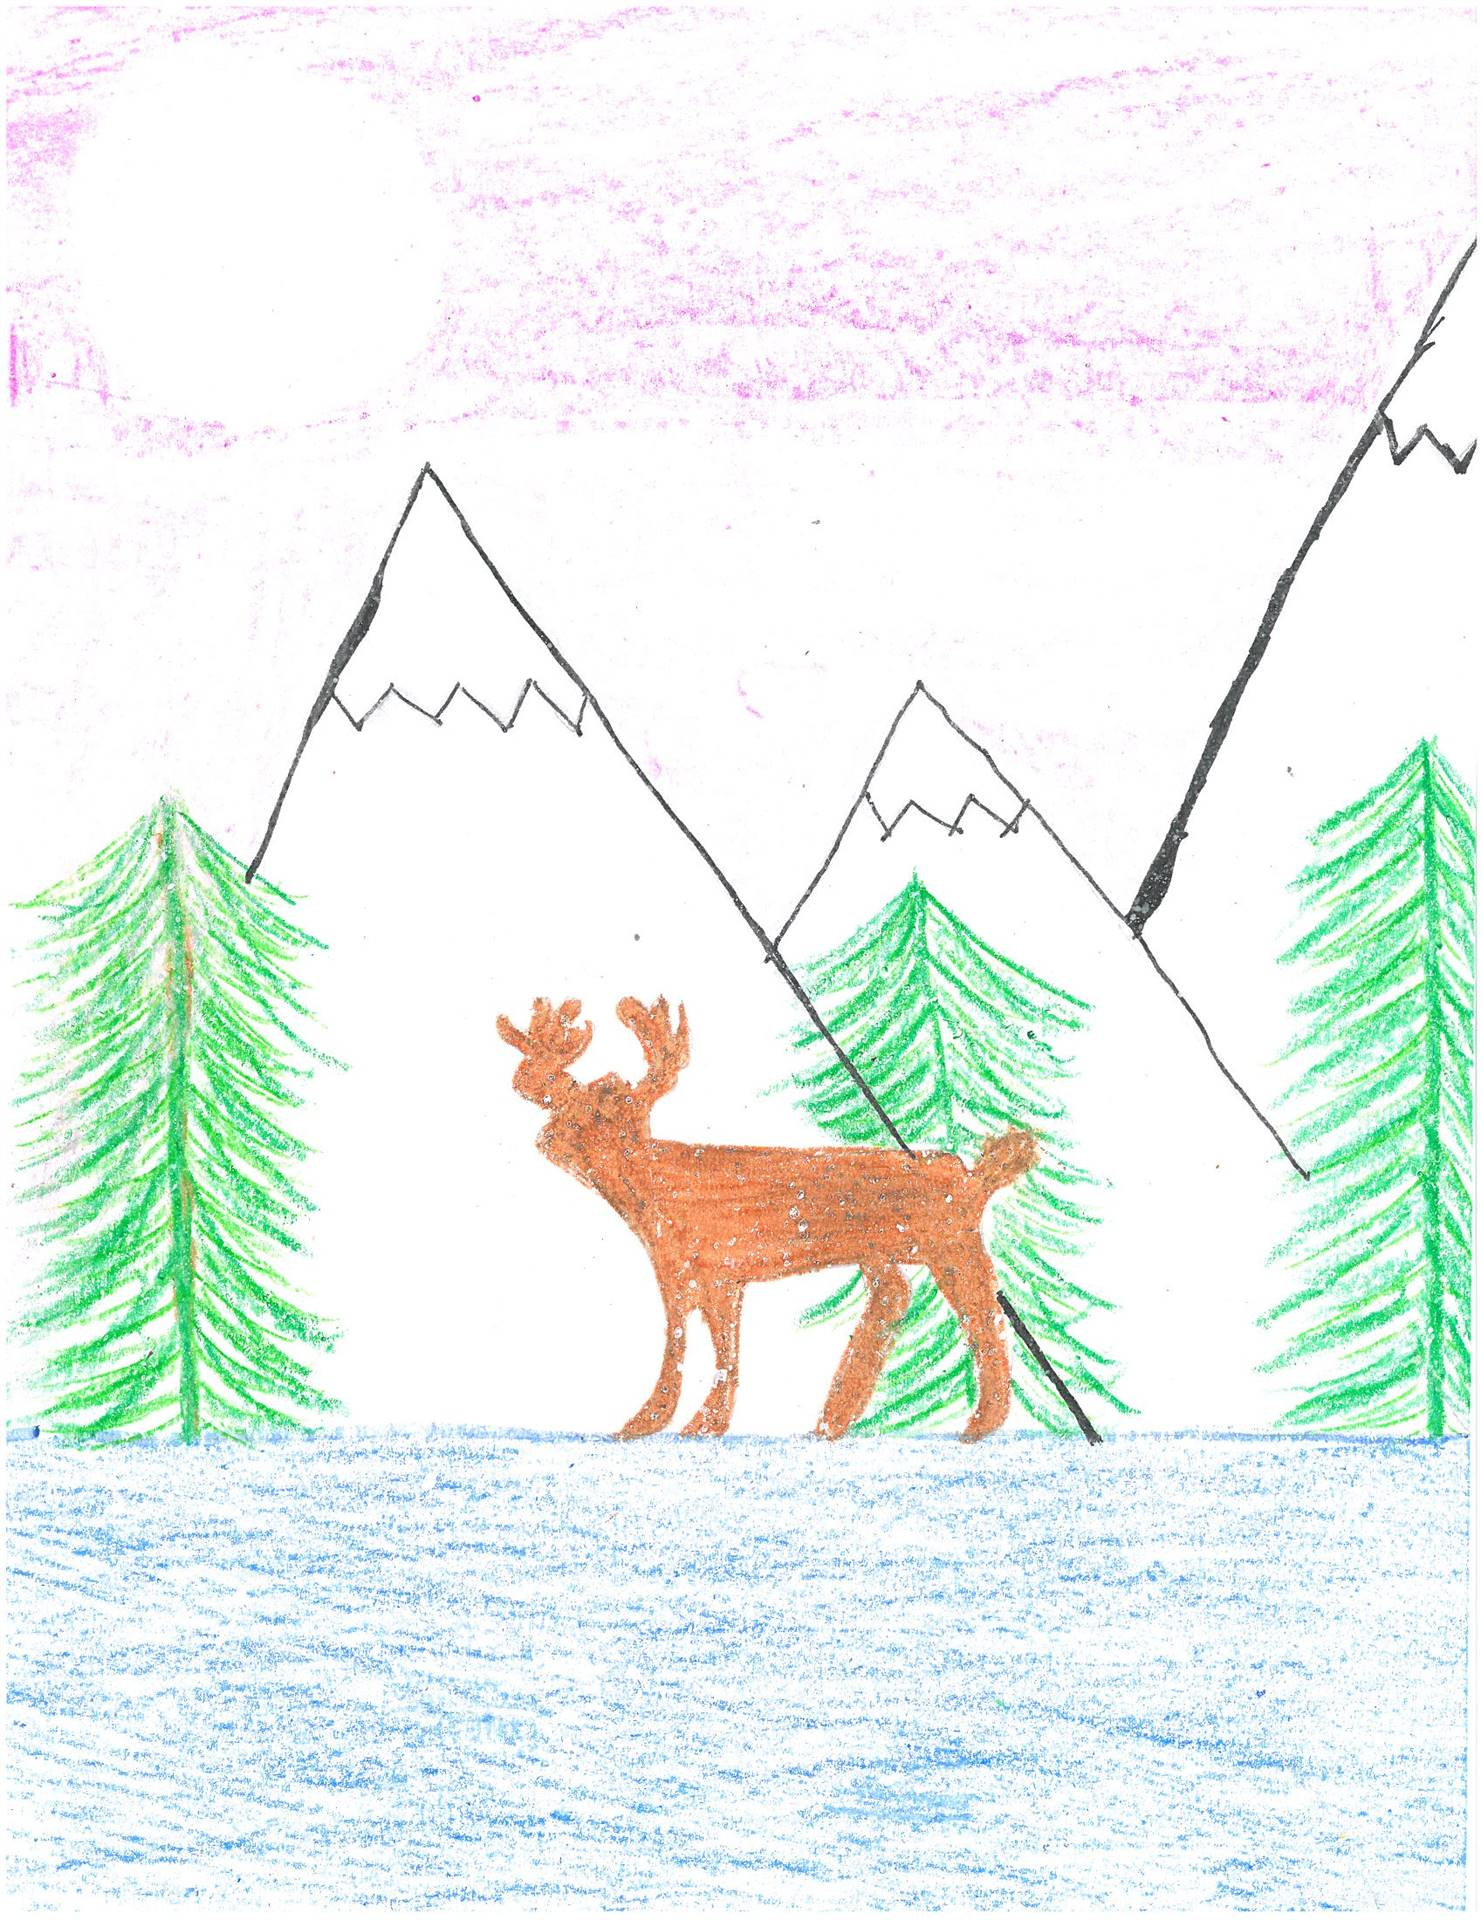 Artwork of winter scene with mountains and deer for holiday card contest